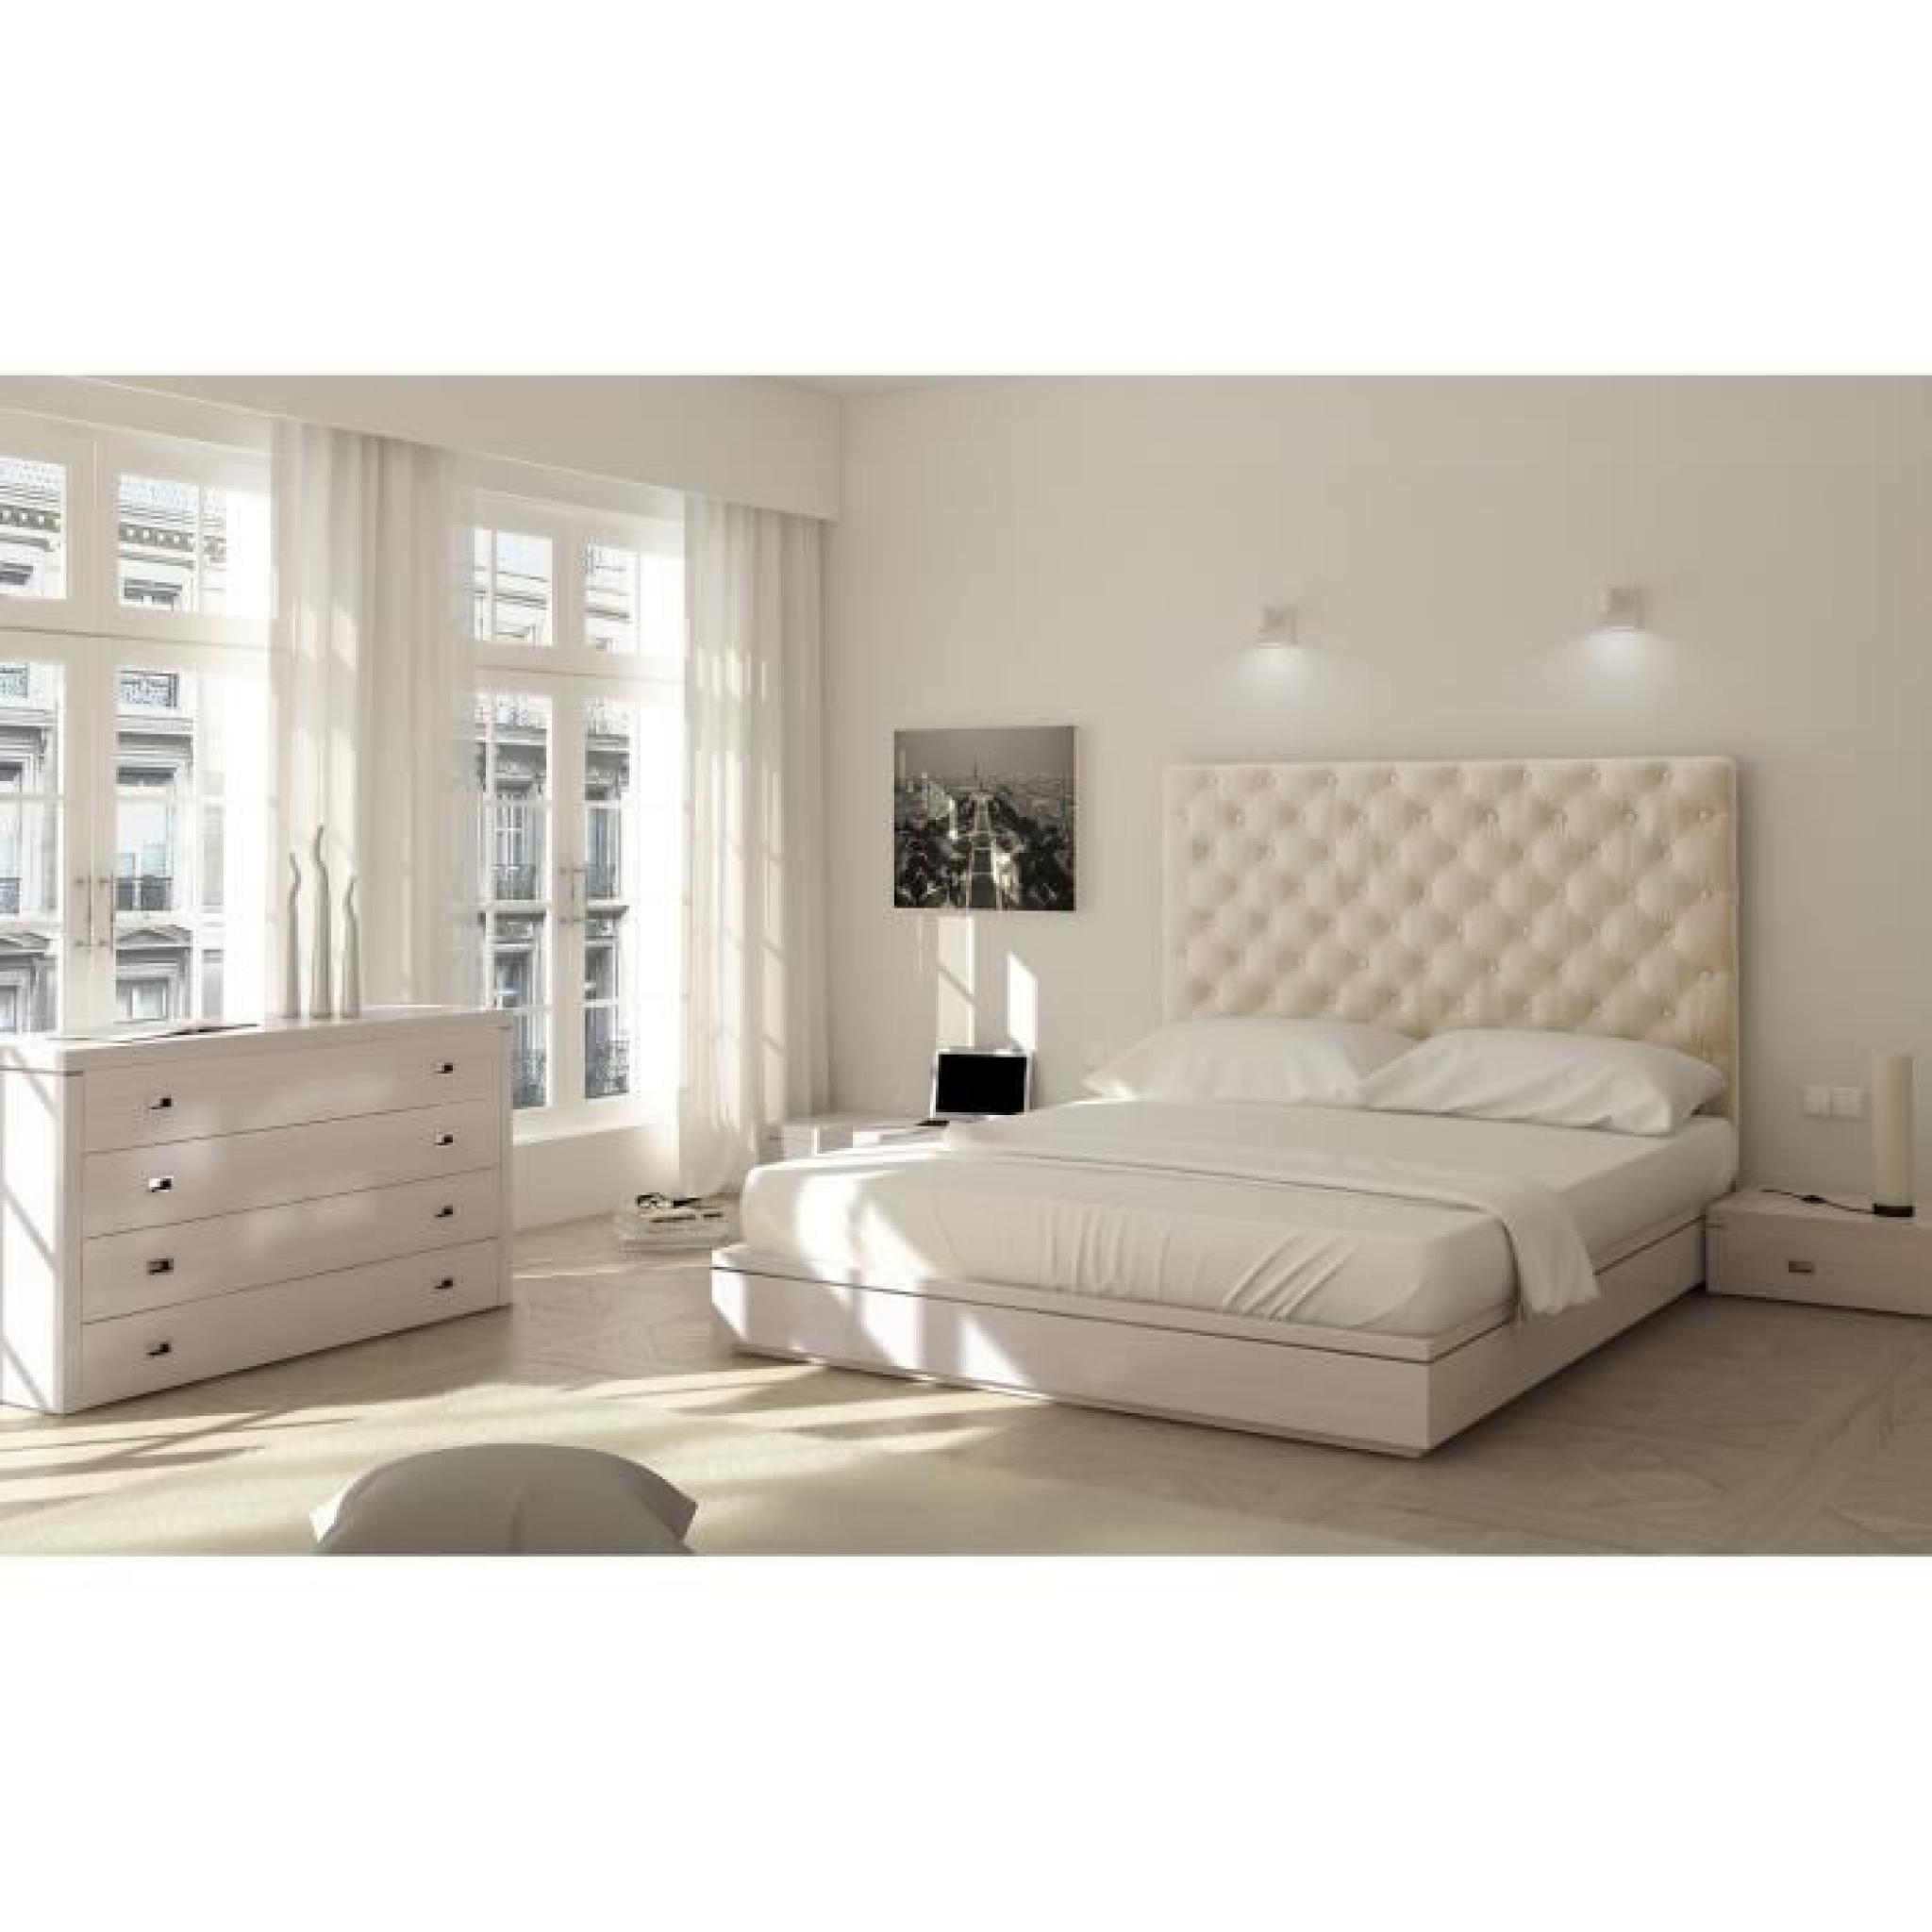 tete de lit capitonne pas cher maison design. Black Bedroom Furniture Sets. Home Design Ideas